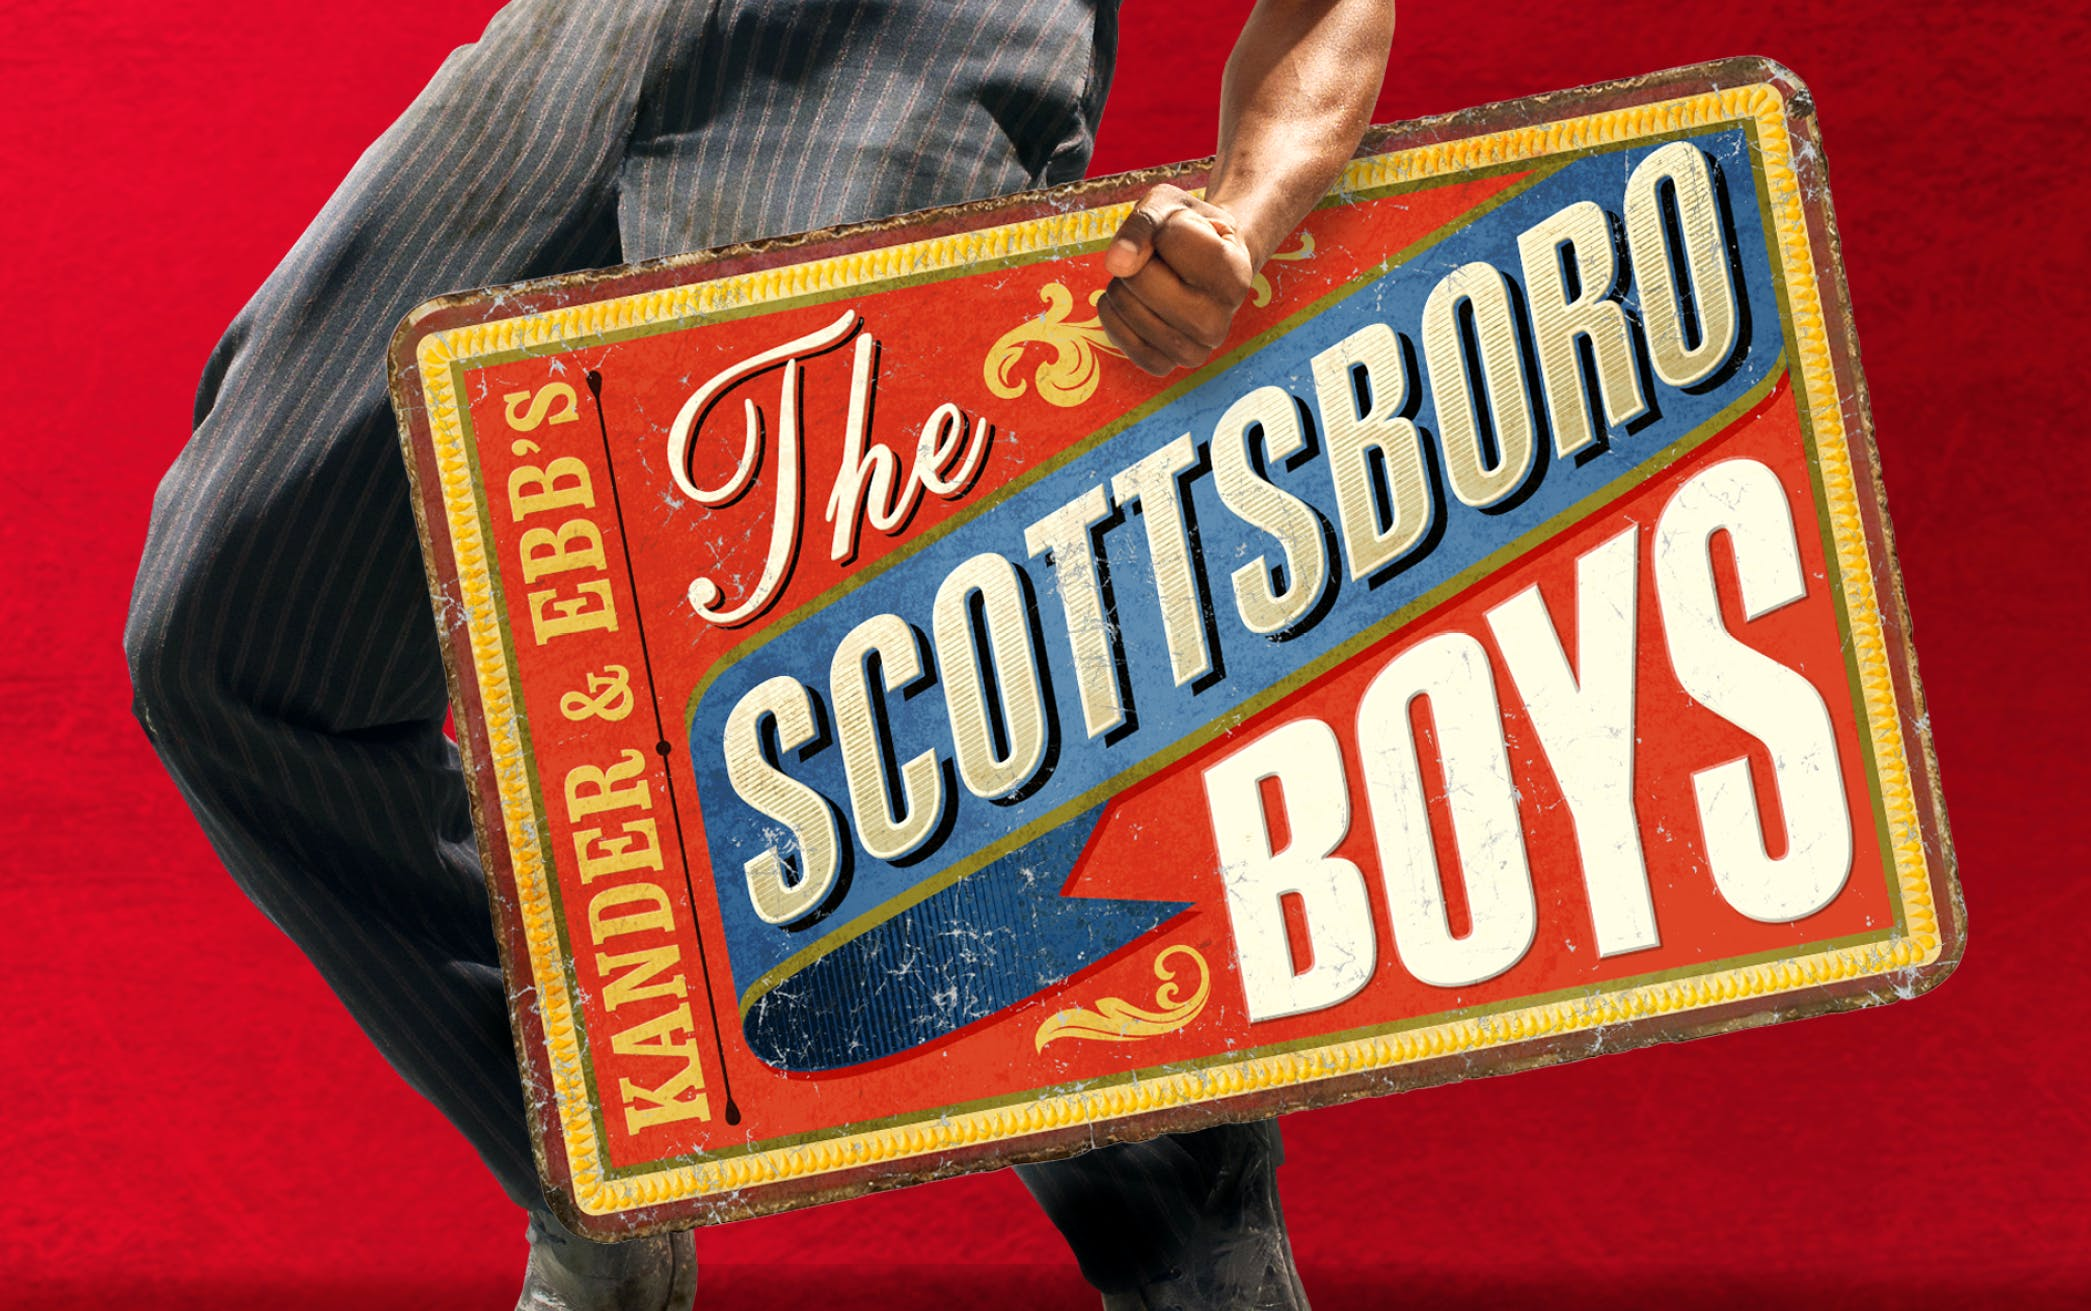 The Scottsboro boys banner